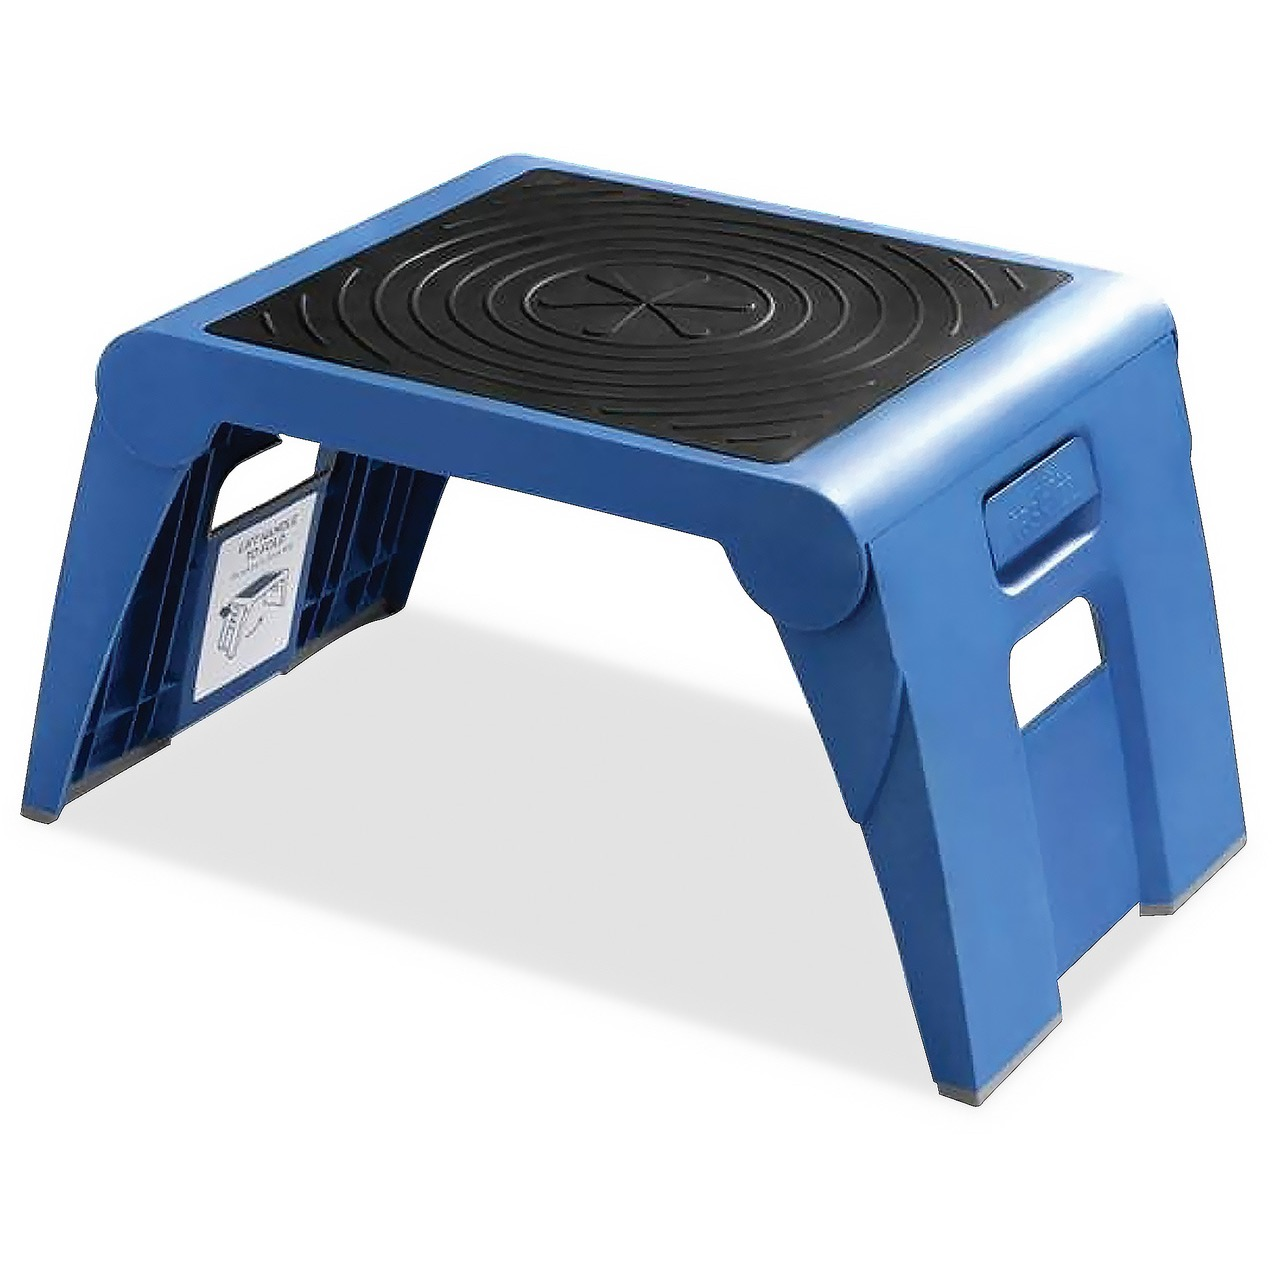 Cramer Folding Step Stool, 300lb Cap, 14w x 11 1/4d x 9 3/4h, Blue